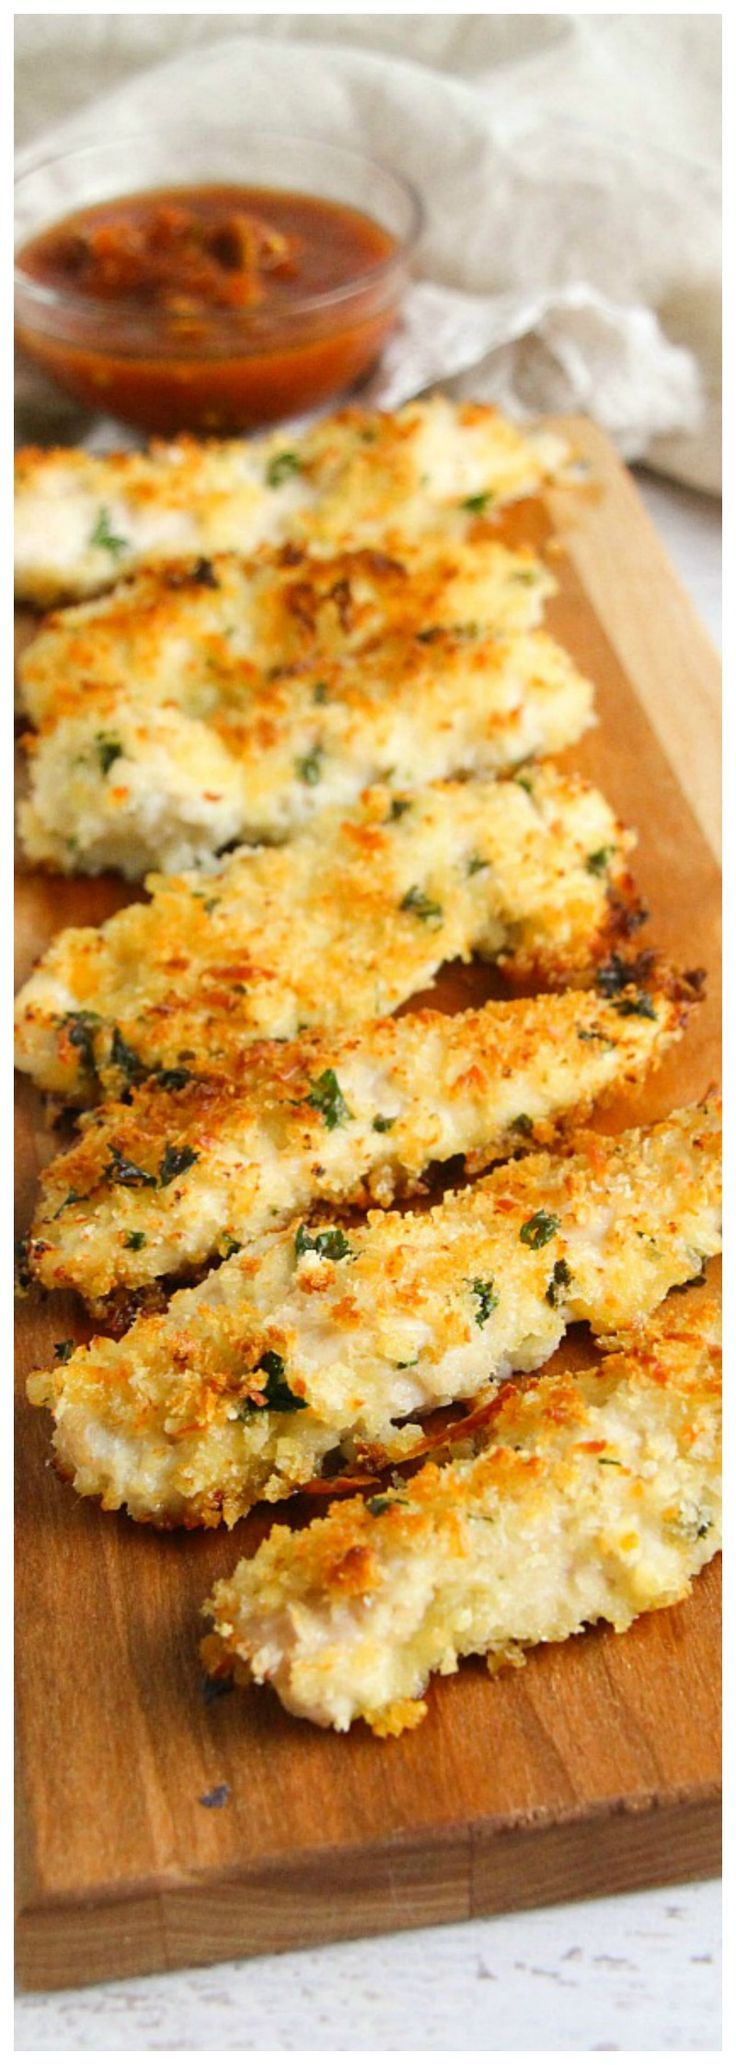 Baked Parmesan Crusted Chicken Fingers Recipe - Delicious Dinner!